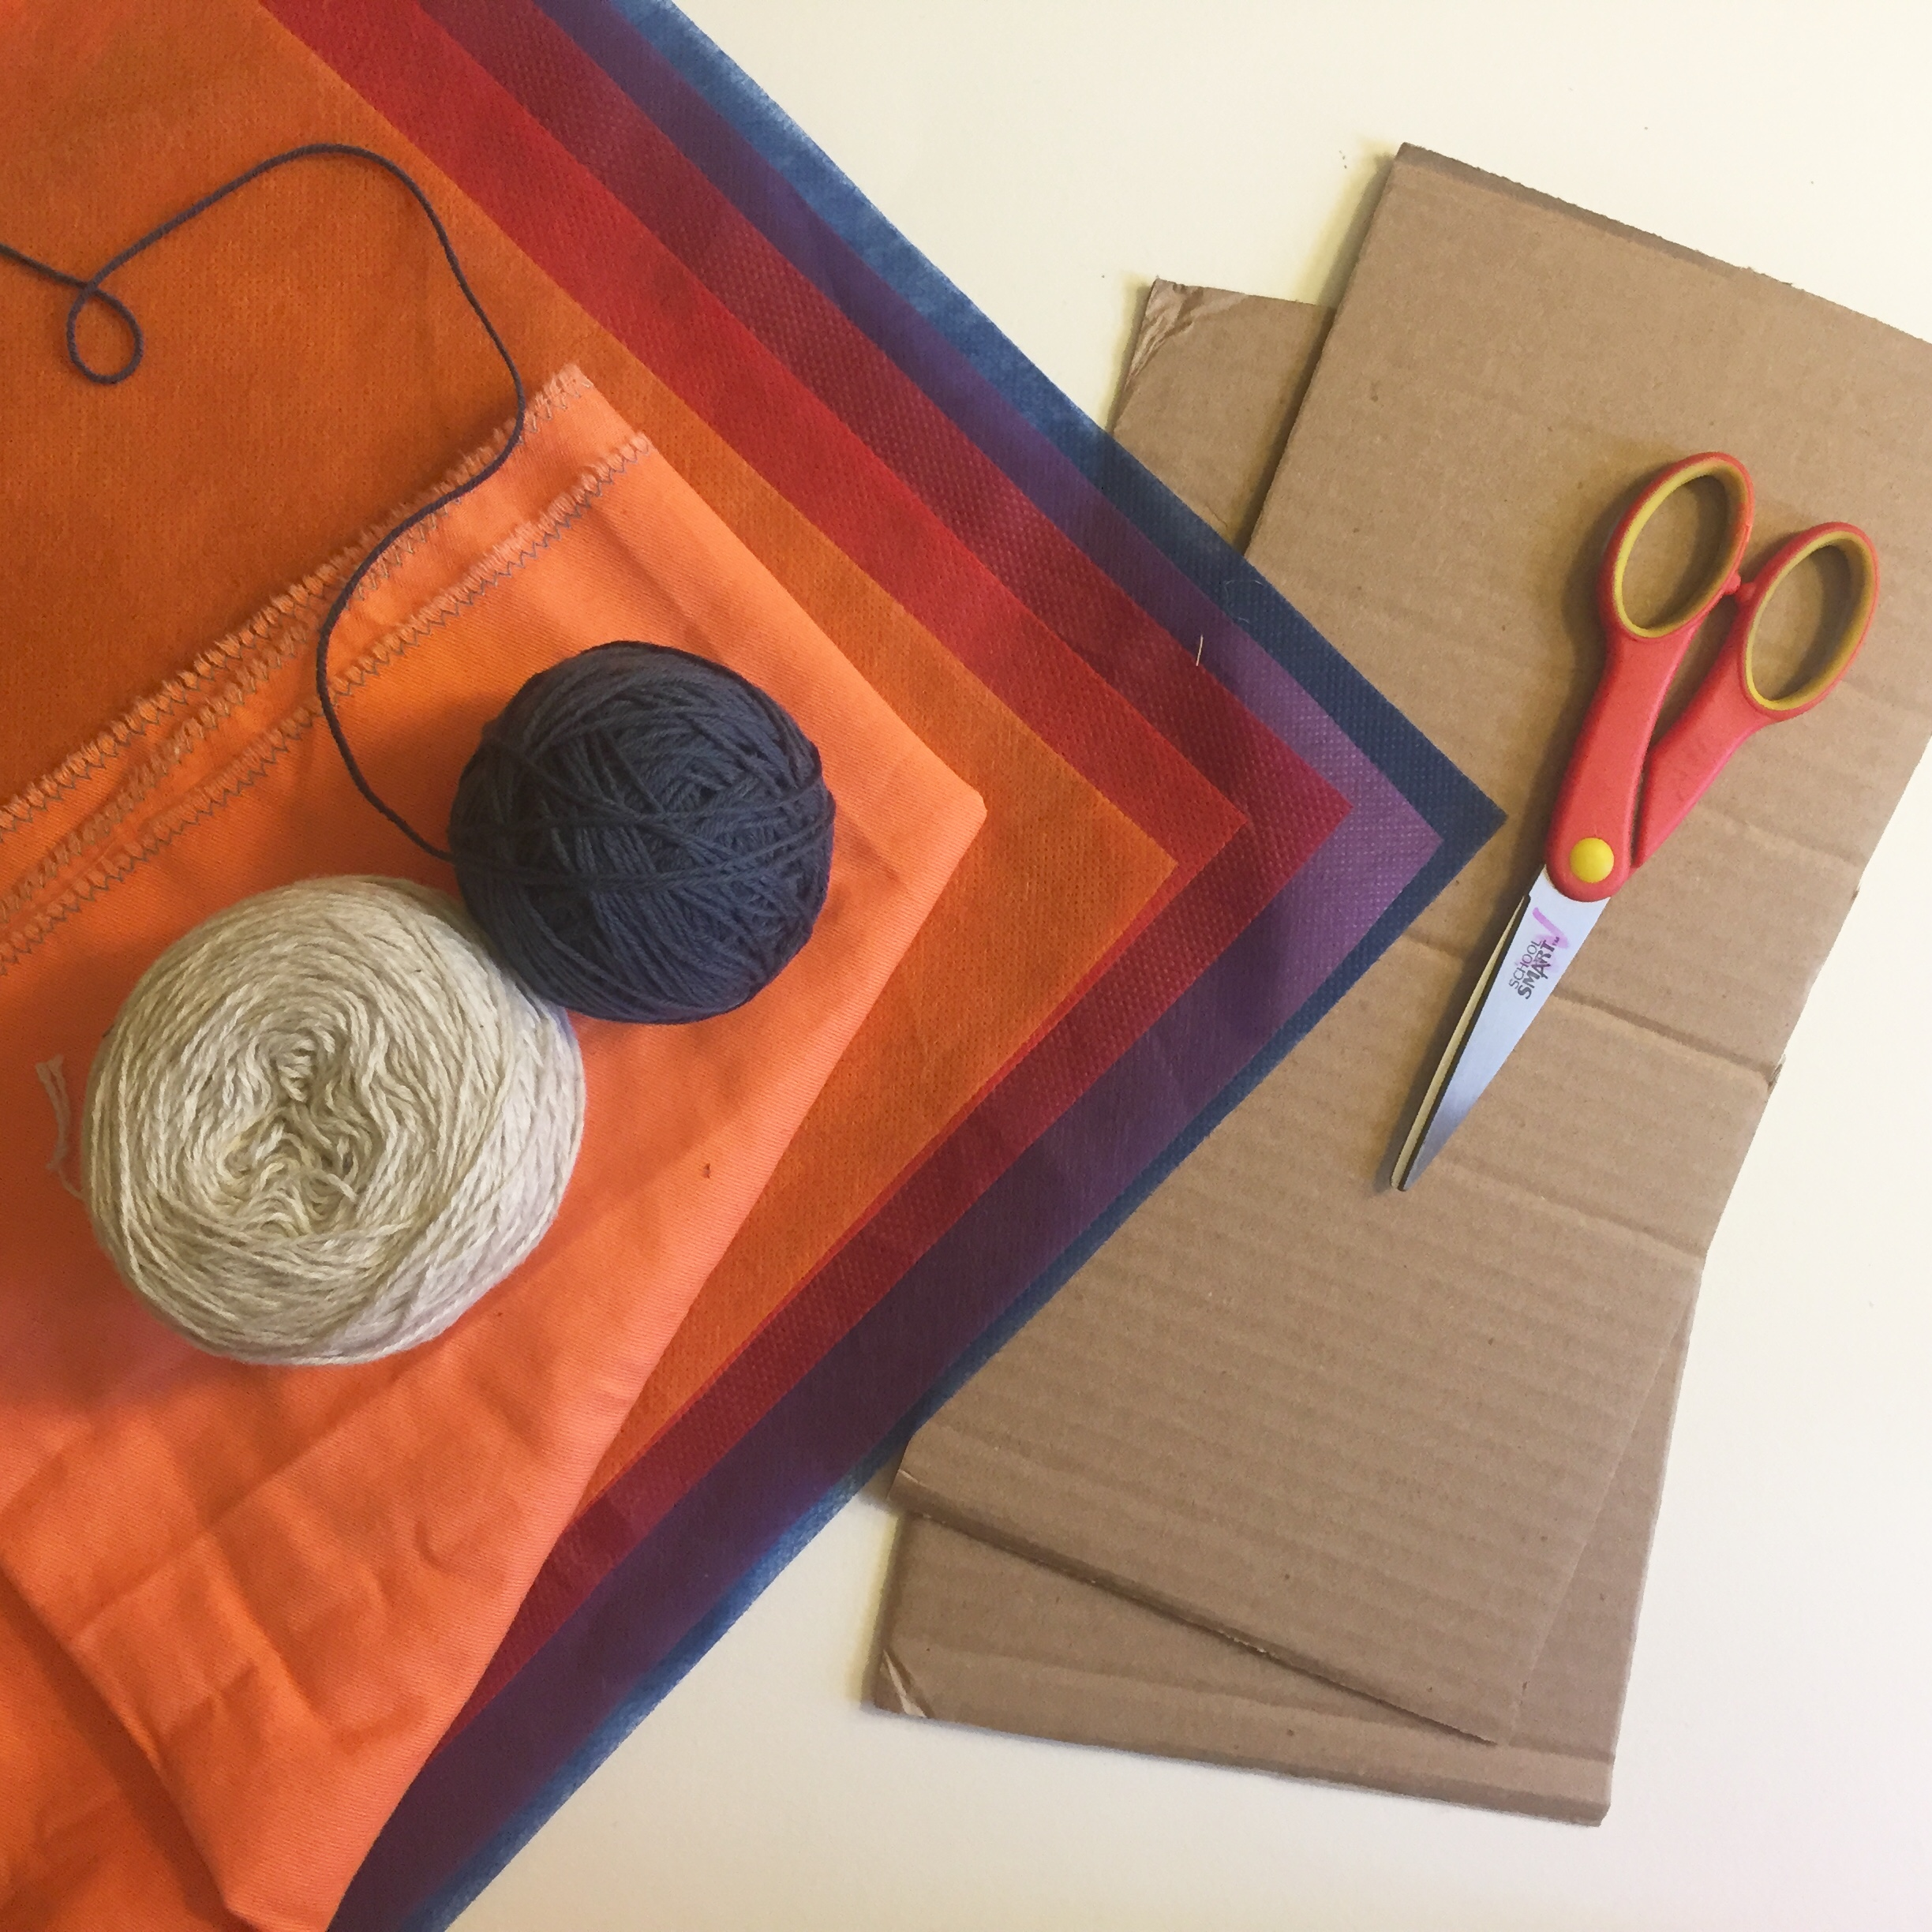 Blue and beige yarn balls on top of tangerine, orange, red, and blue sheer fabric nect to two pieces of card board and scissors